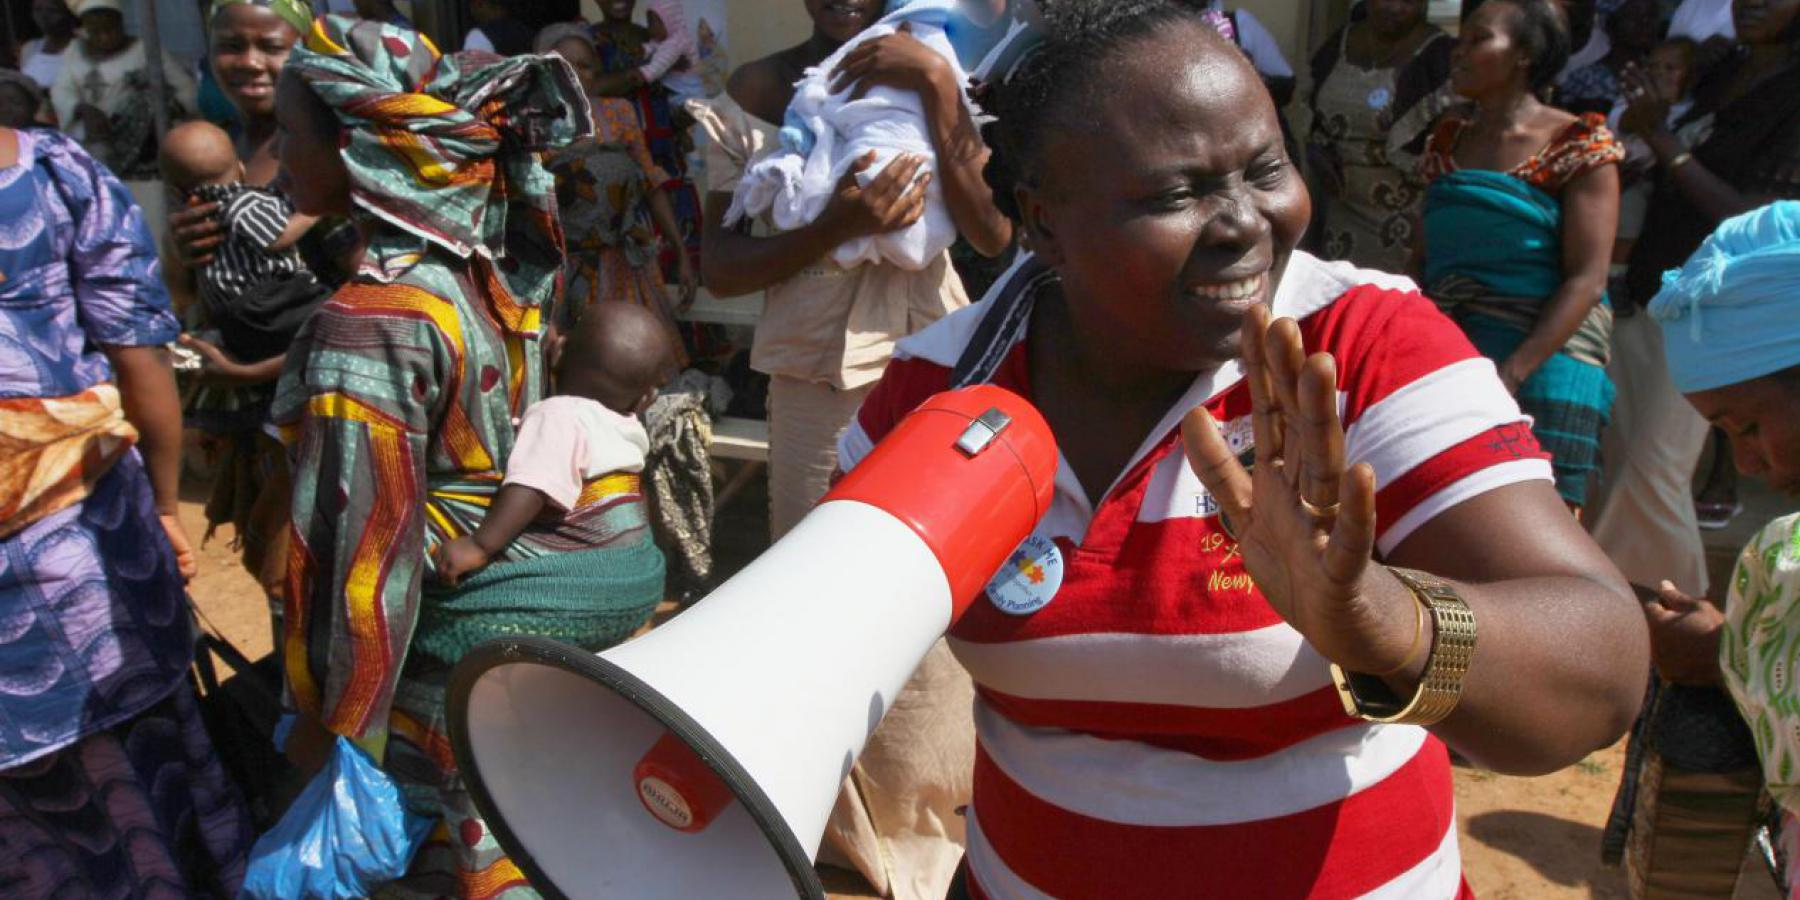 A family planning mobilizer sings with nursing mothers at the start of a family planning visibility parade in Omuaran township, Nigeria